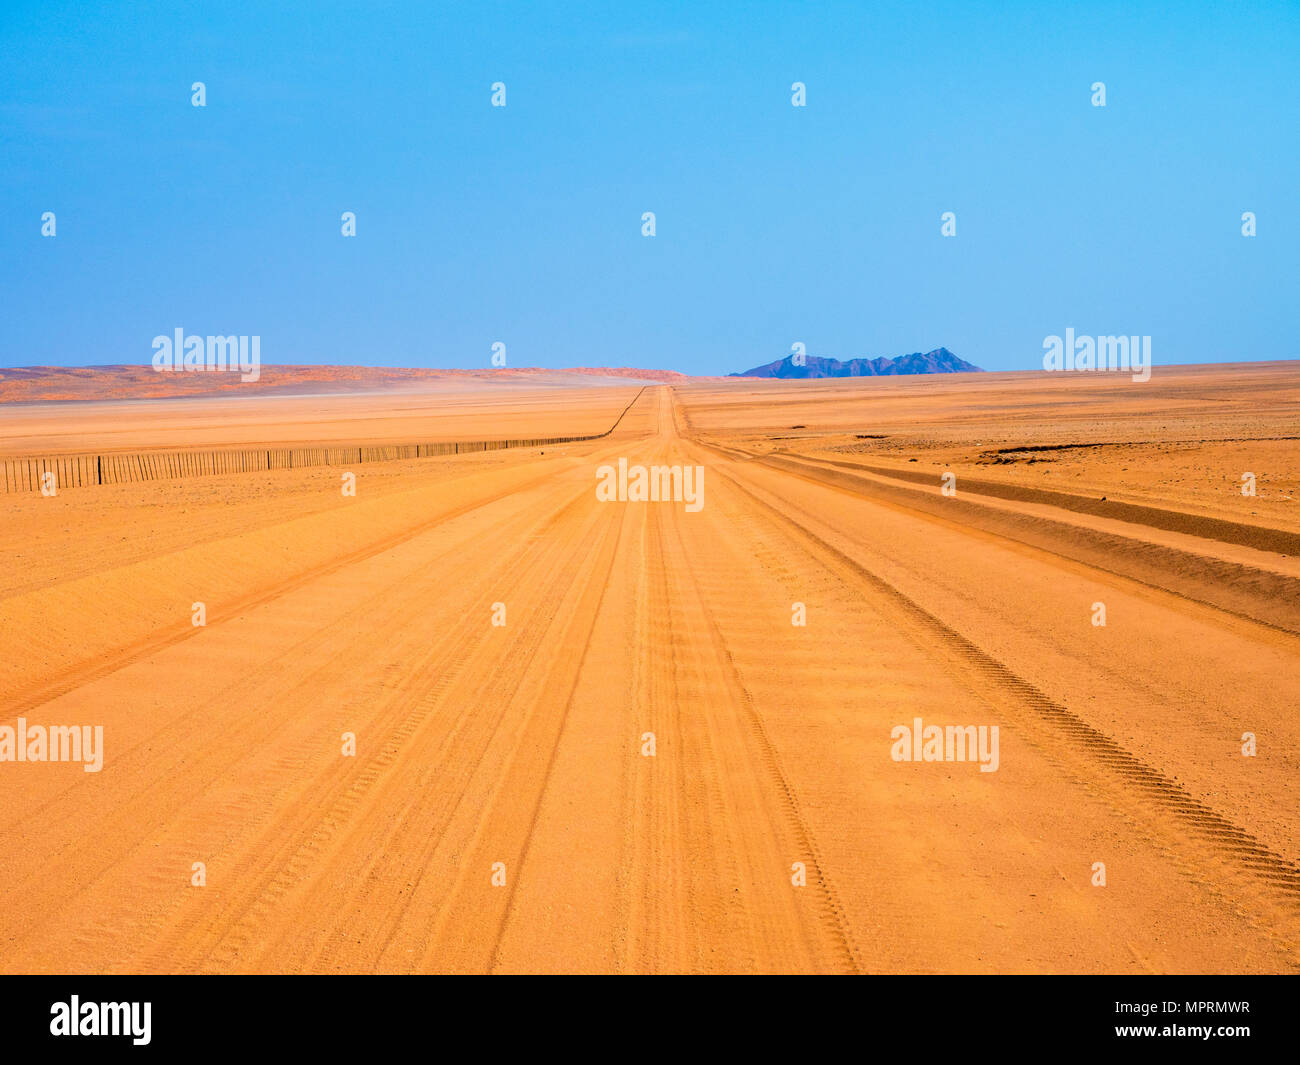 Africa, Namibia, Sand track D707 - Stock Image